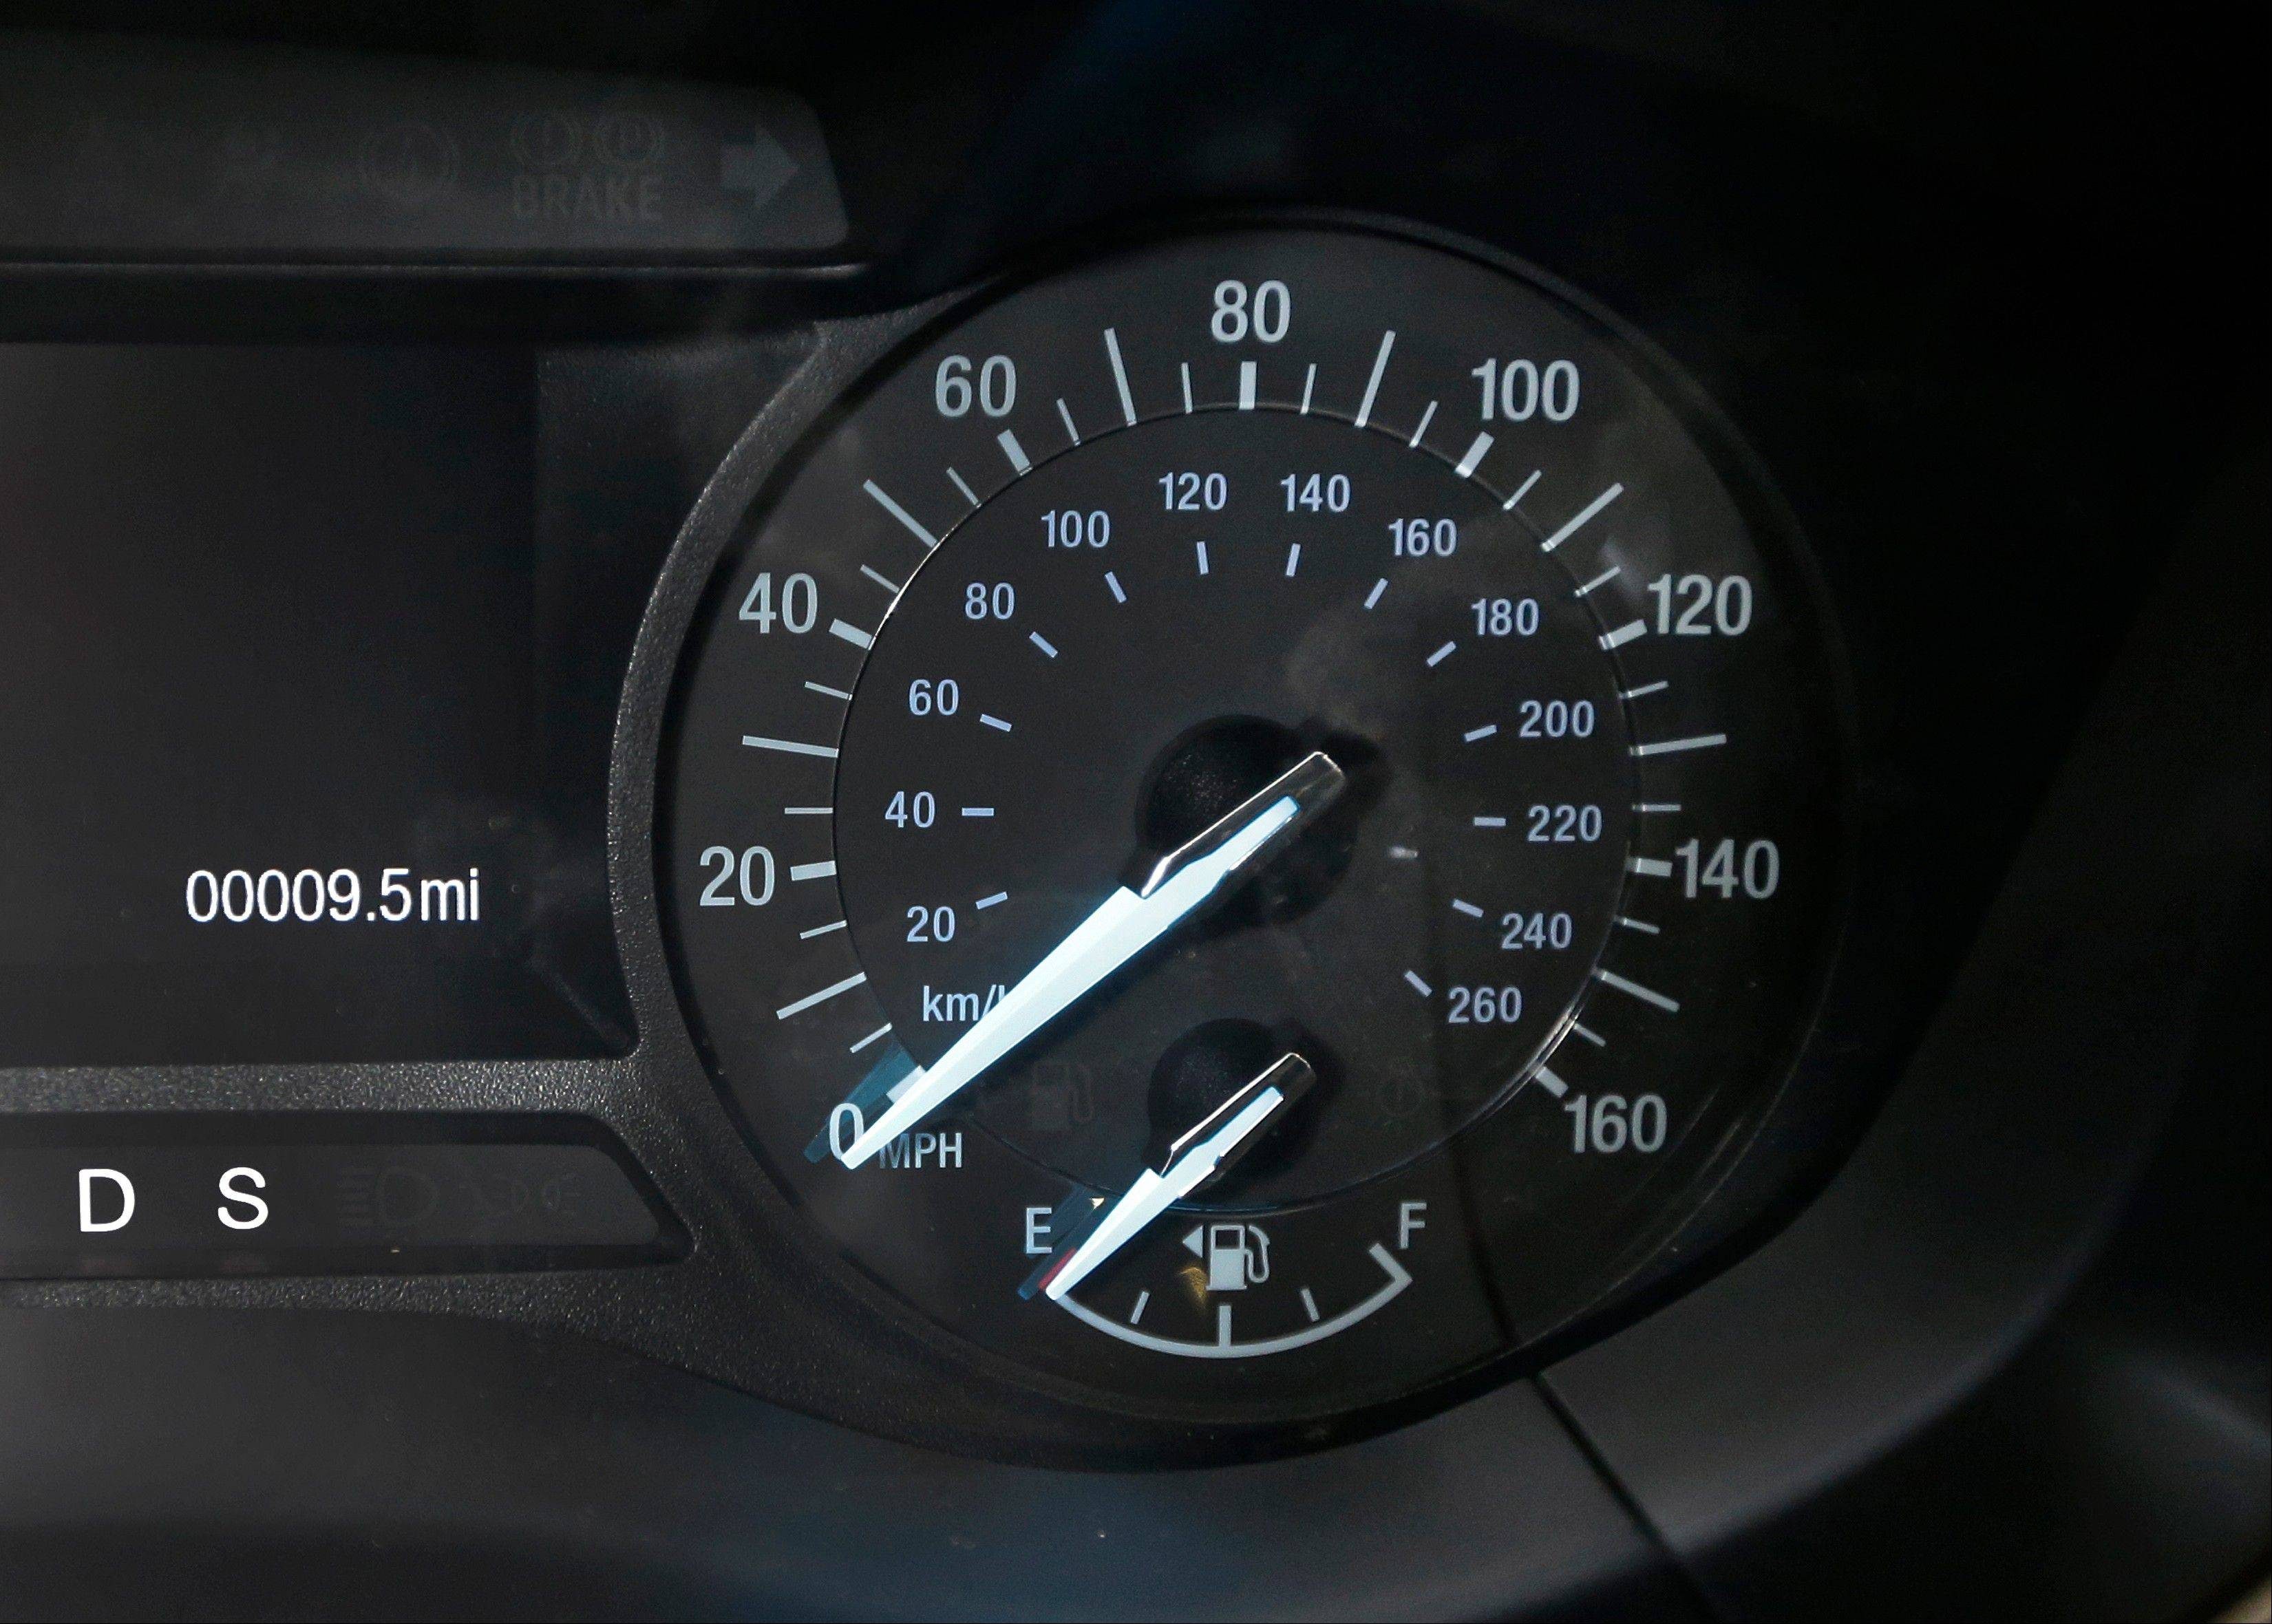 The speedometer of a 2013 Ford Fusion displayed at the Bob Maxey dealership in Detroit. Although current cars with high-horsepower engines can come close to the top speedometer speeds, most are limited by engine control computers. That's because the tires can overheat and fail at higher speeds.